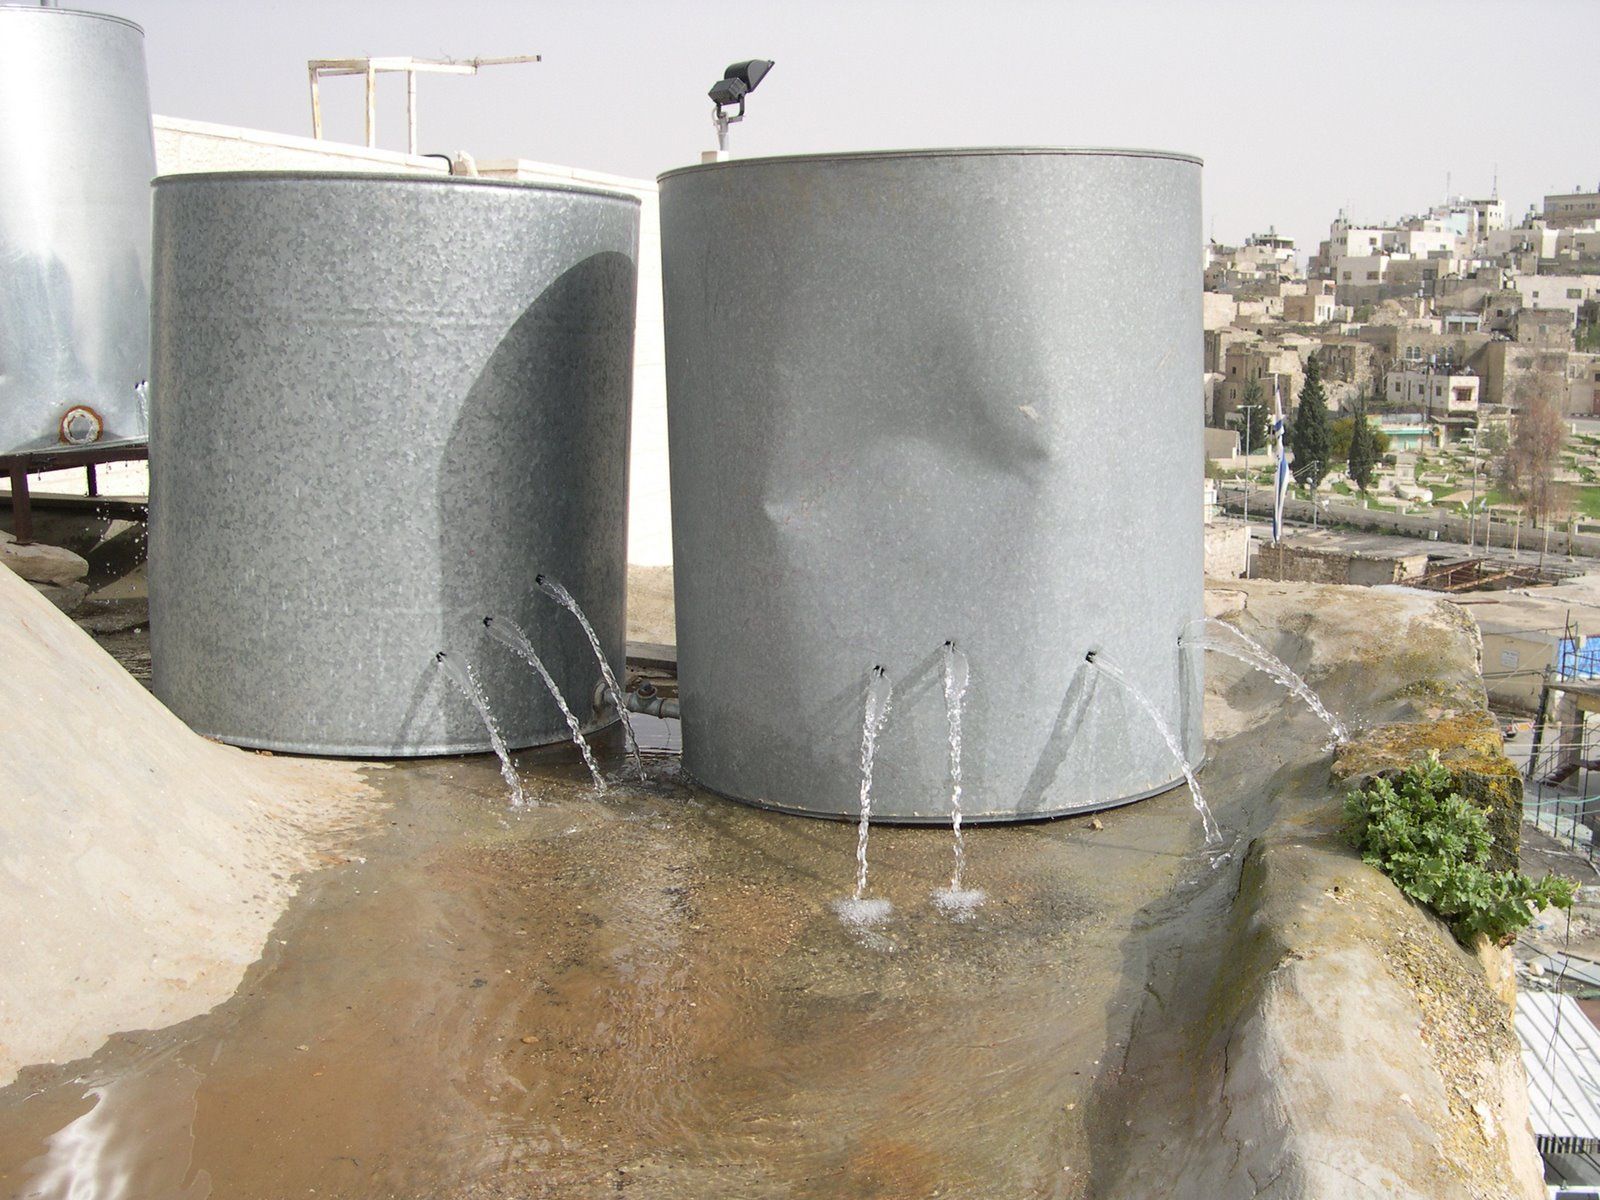 Palestinian_water_tanks_destroyed_by_settlers_in_Hebron